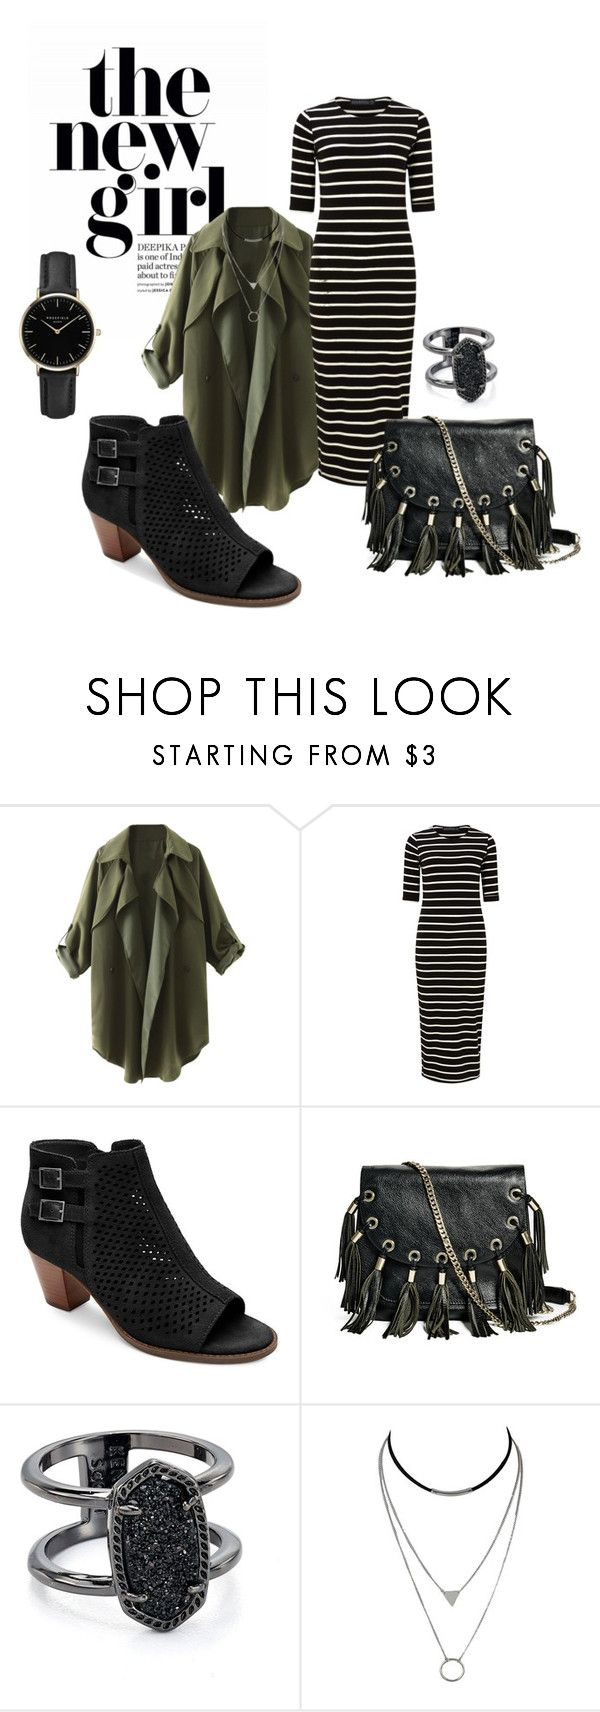 """""""On Trend Look"""" by katy-atchison on Polyvore featuring Sugarhill Boutique, Vionic, GUESS by Marciano, Kendra Scott and ROSEFIELD"""